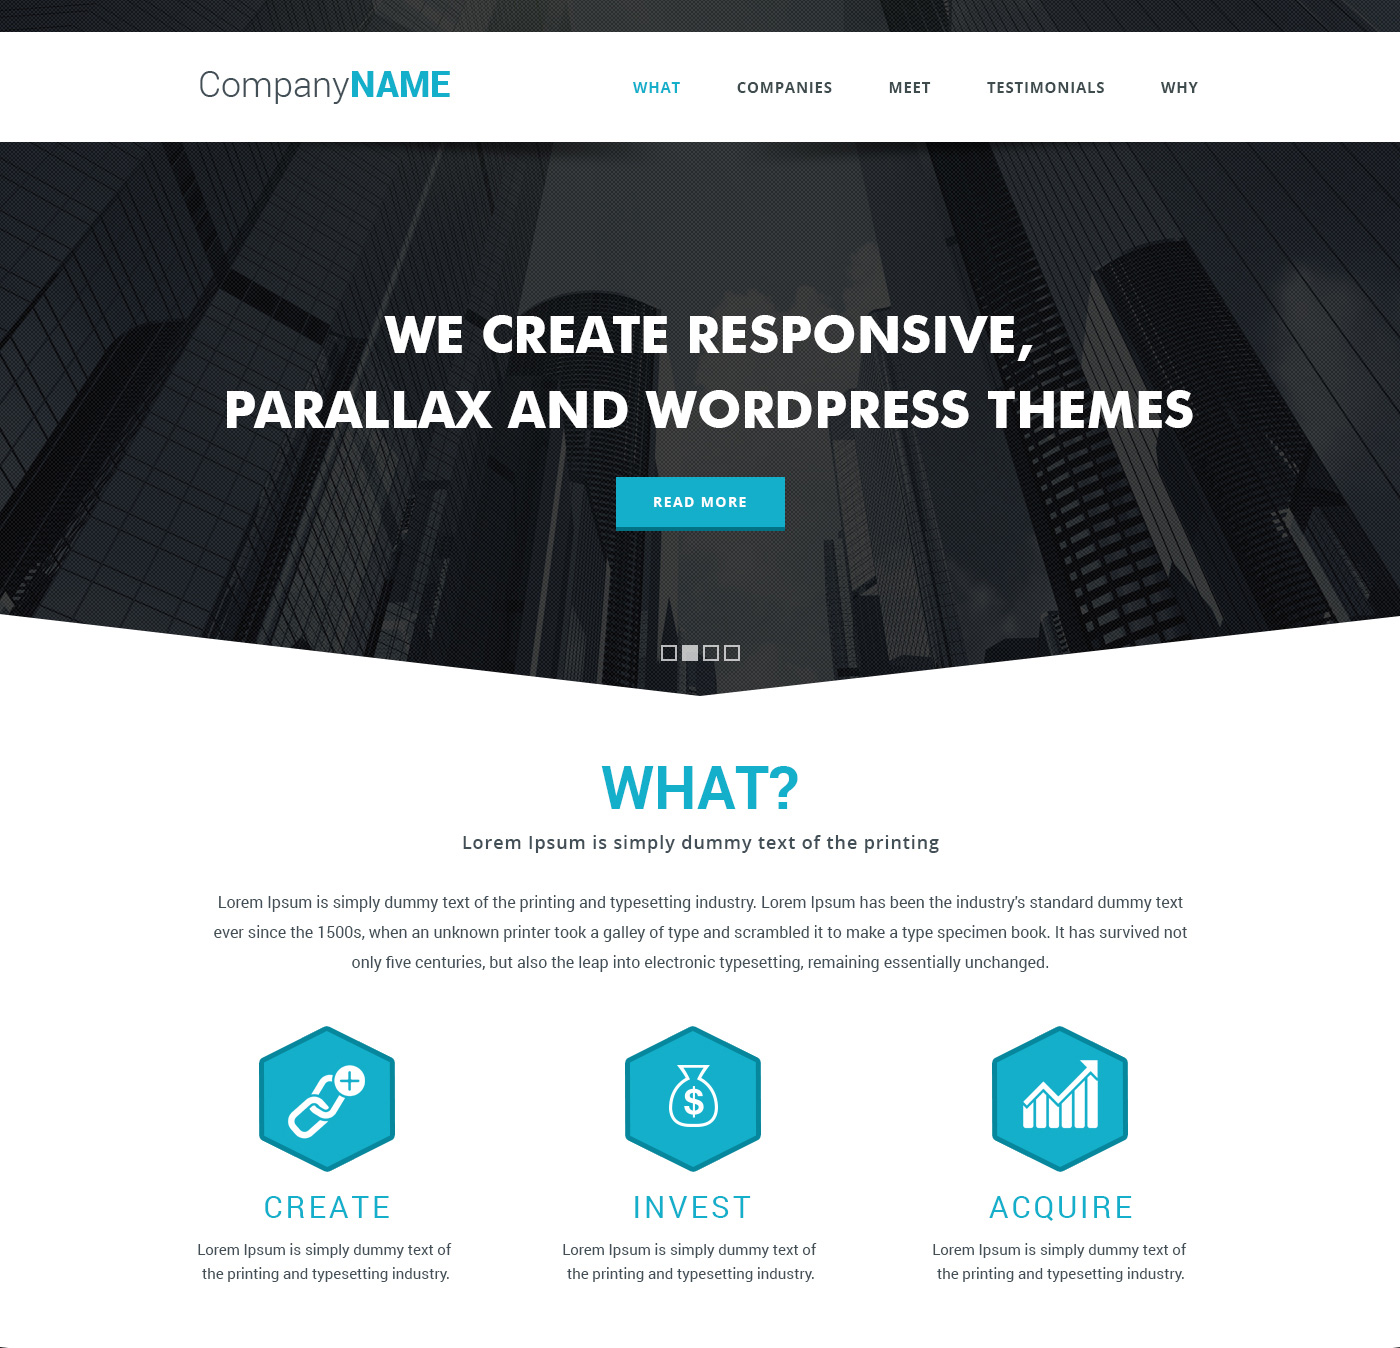 Simple parallax website template free psd download download psd simple parallax website template free psd wajeb Choice Image